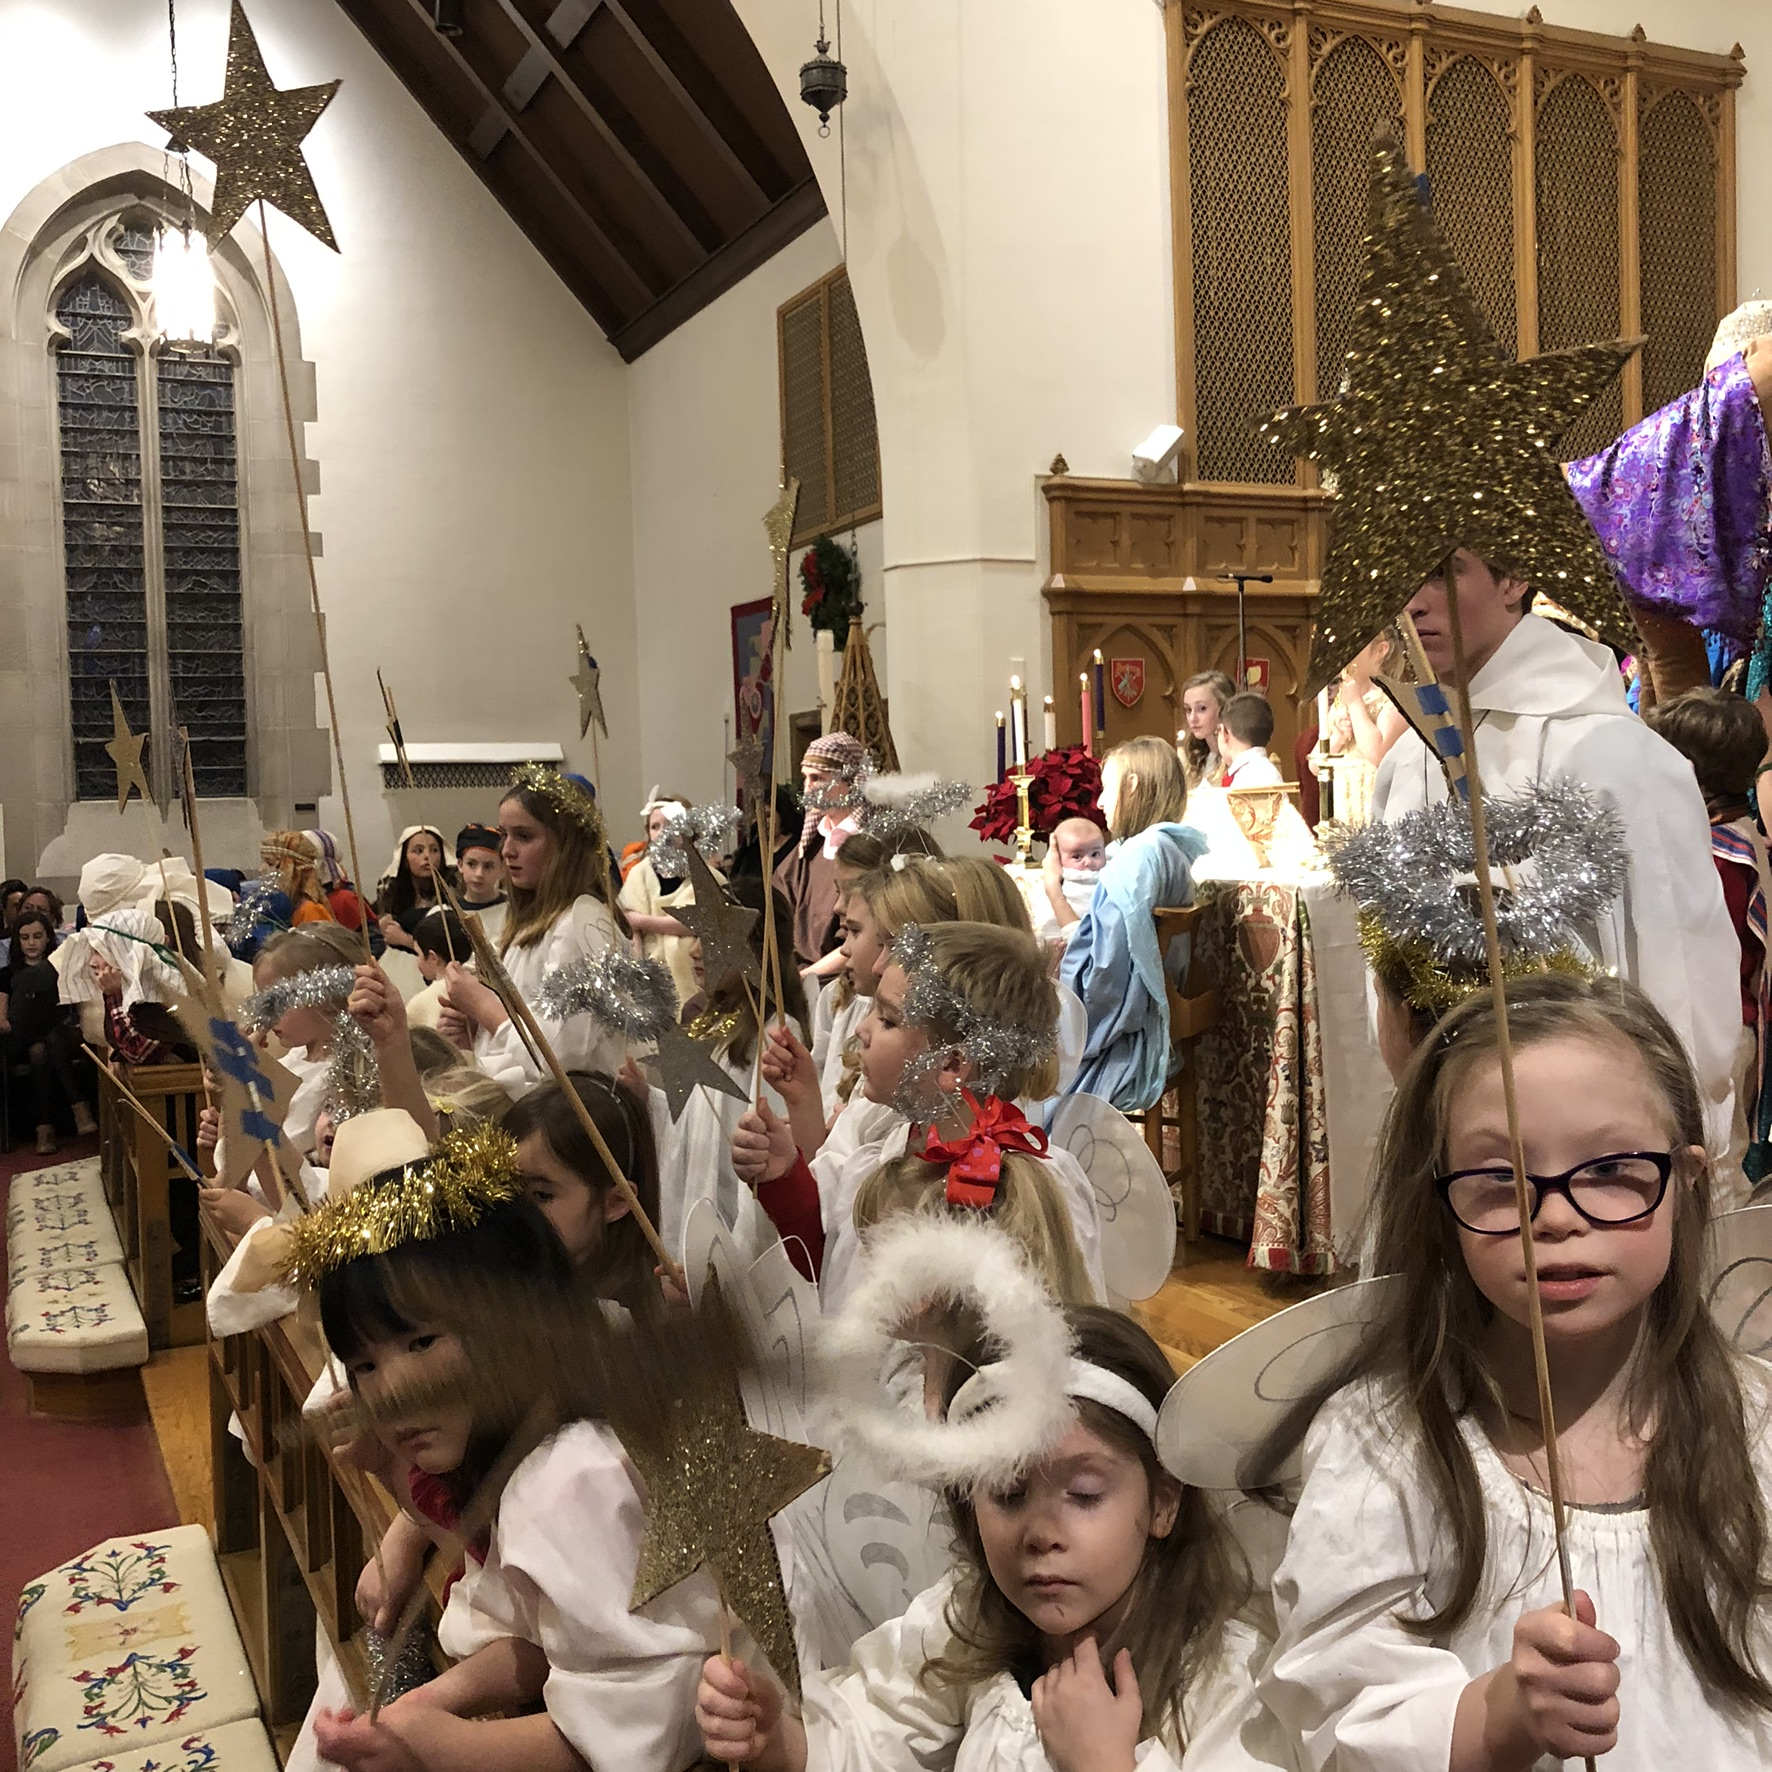 Christmas Pageant 2019 Christmas Pageant 2019 Update | St. Paul's